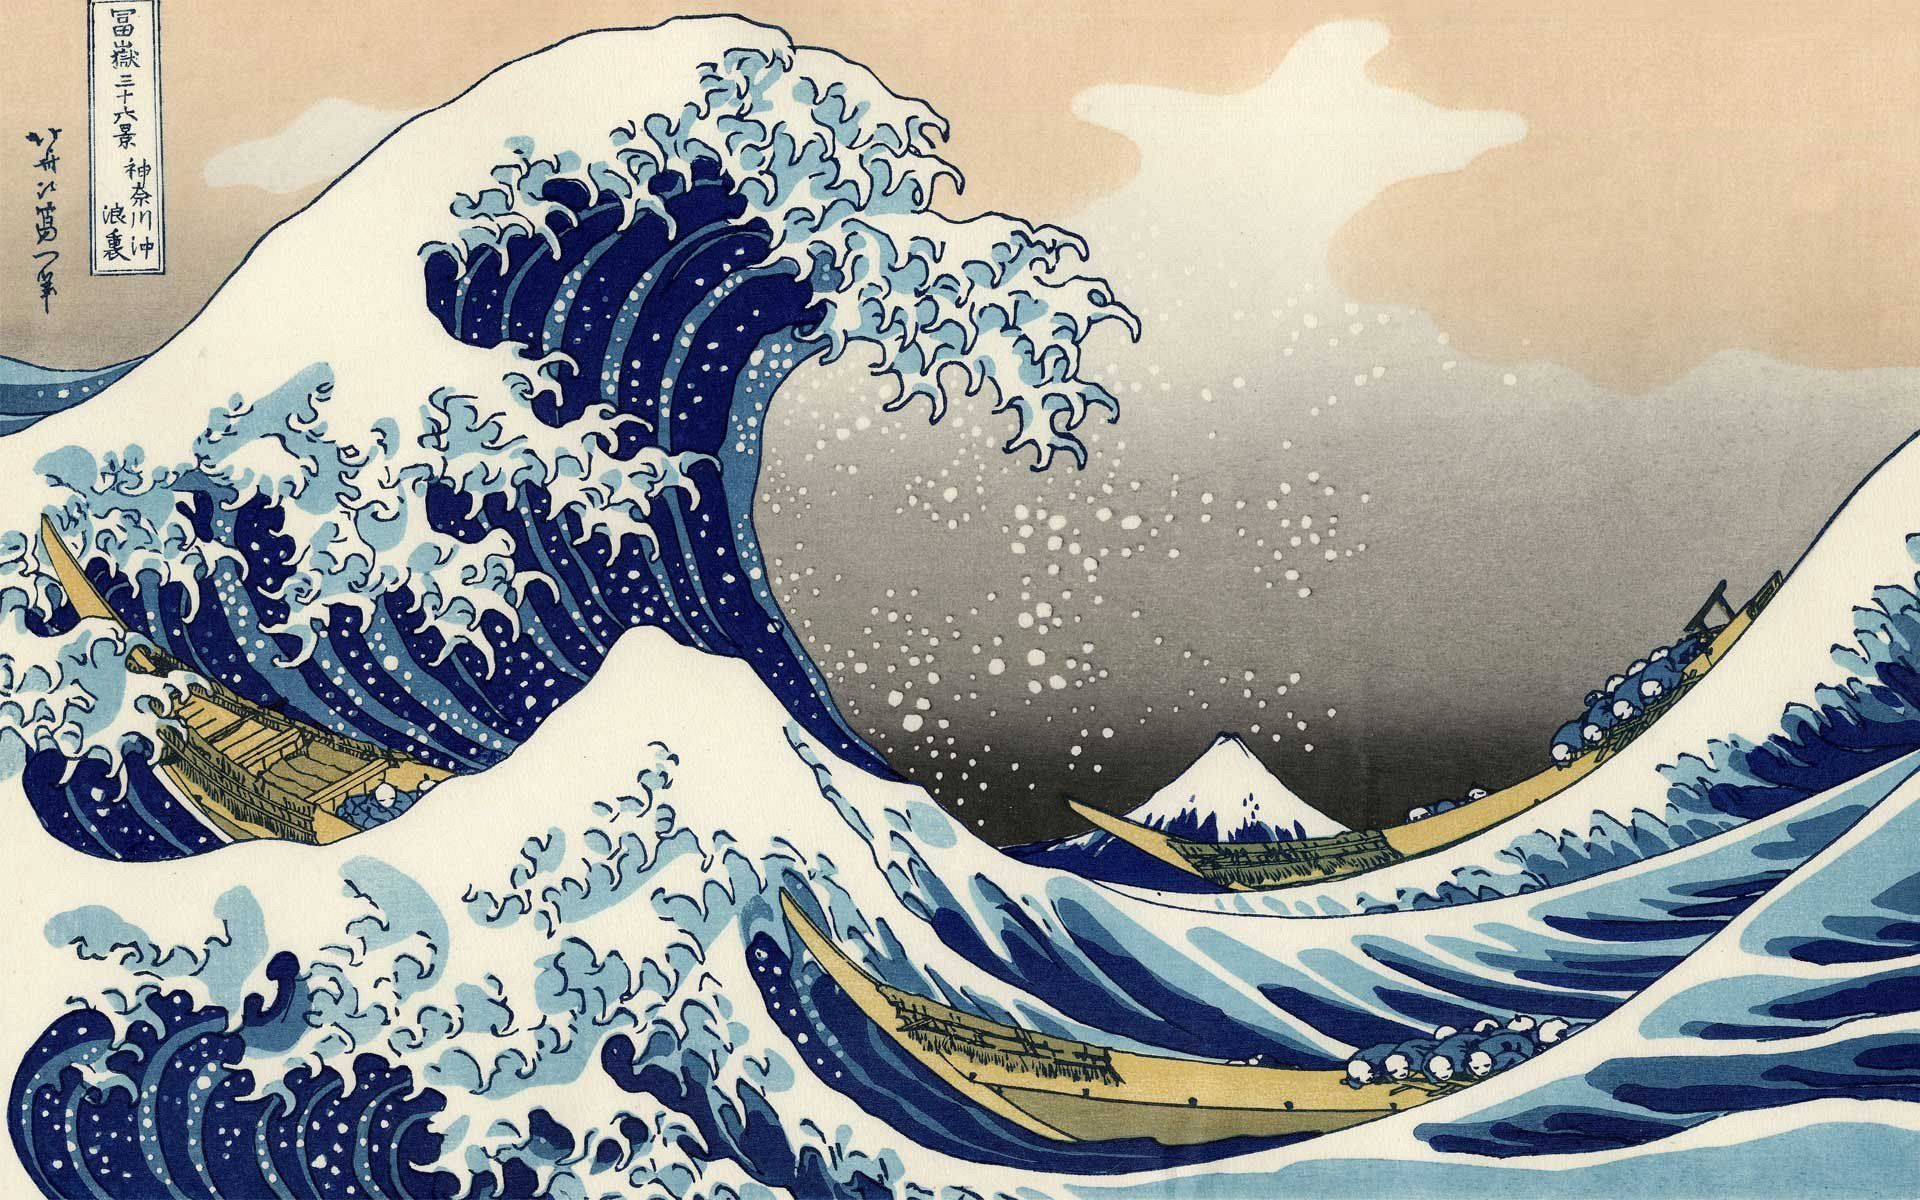 Wallpaperawesome Wallpapers Awesome Famous Painting Artist Painter Brush Oil On Canvas Wallpaper Katsushika Hokusai The